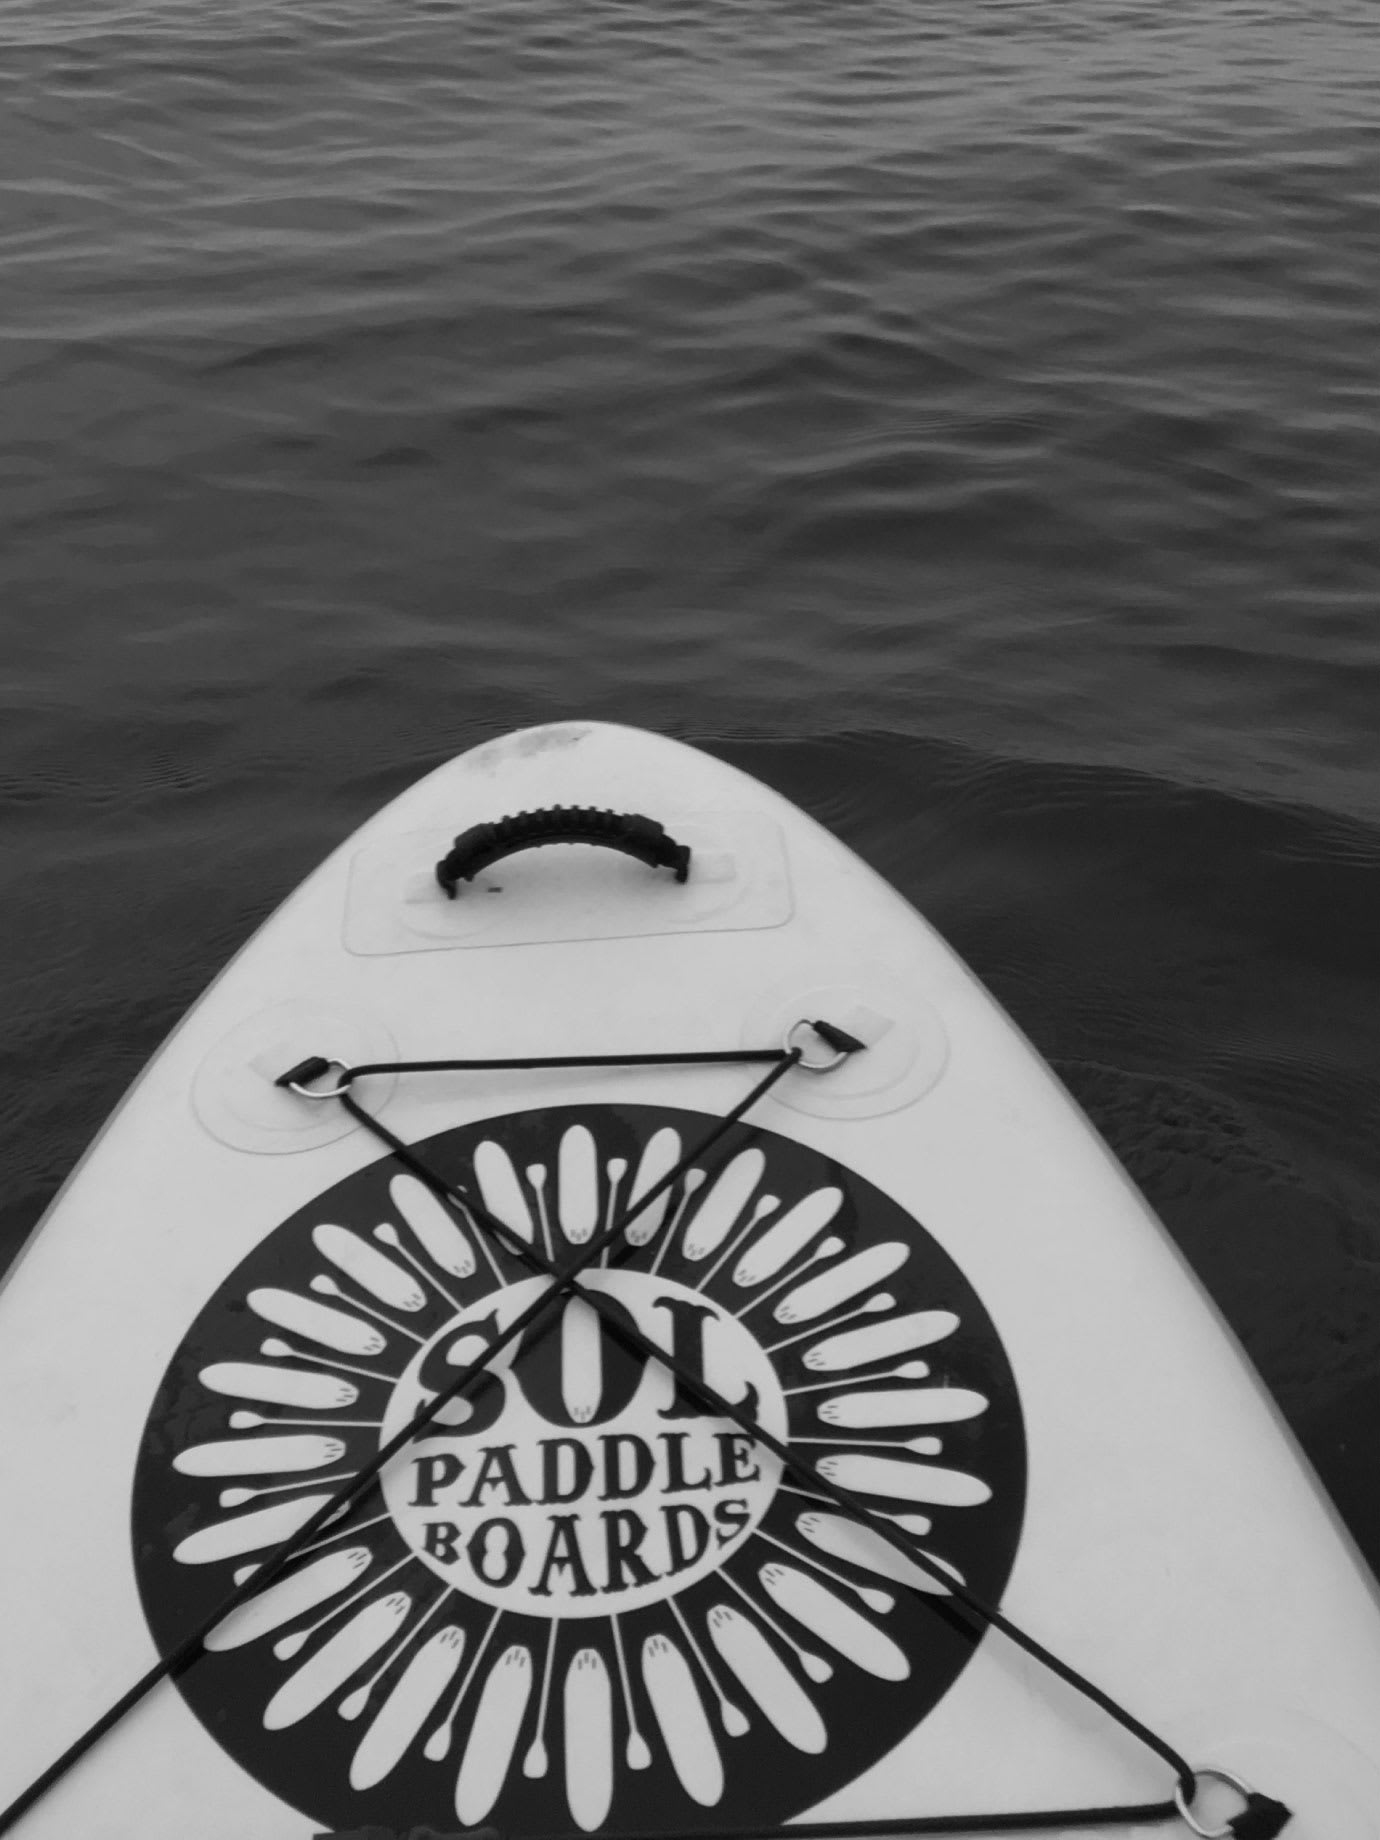 The top of a paddle board on water.